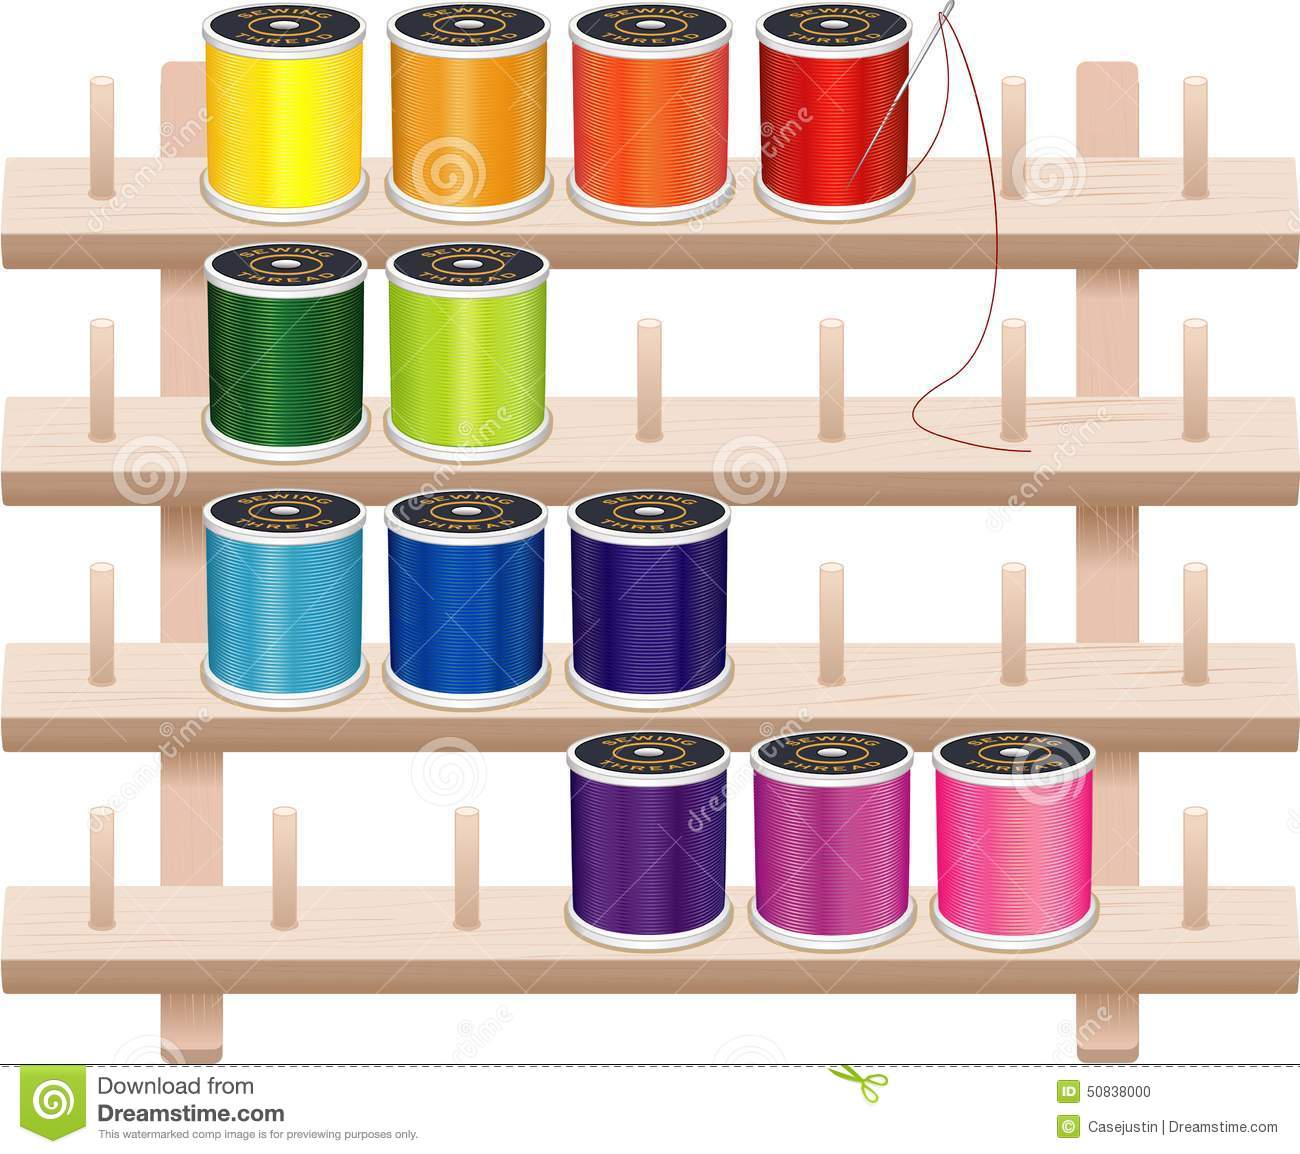 Sewing Thread Storage Wall Rack Stock Vector Image 50838000